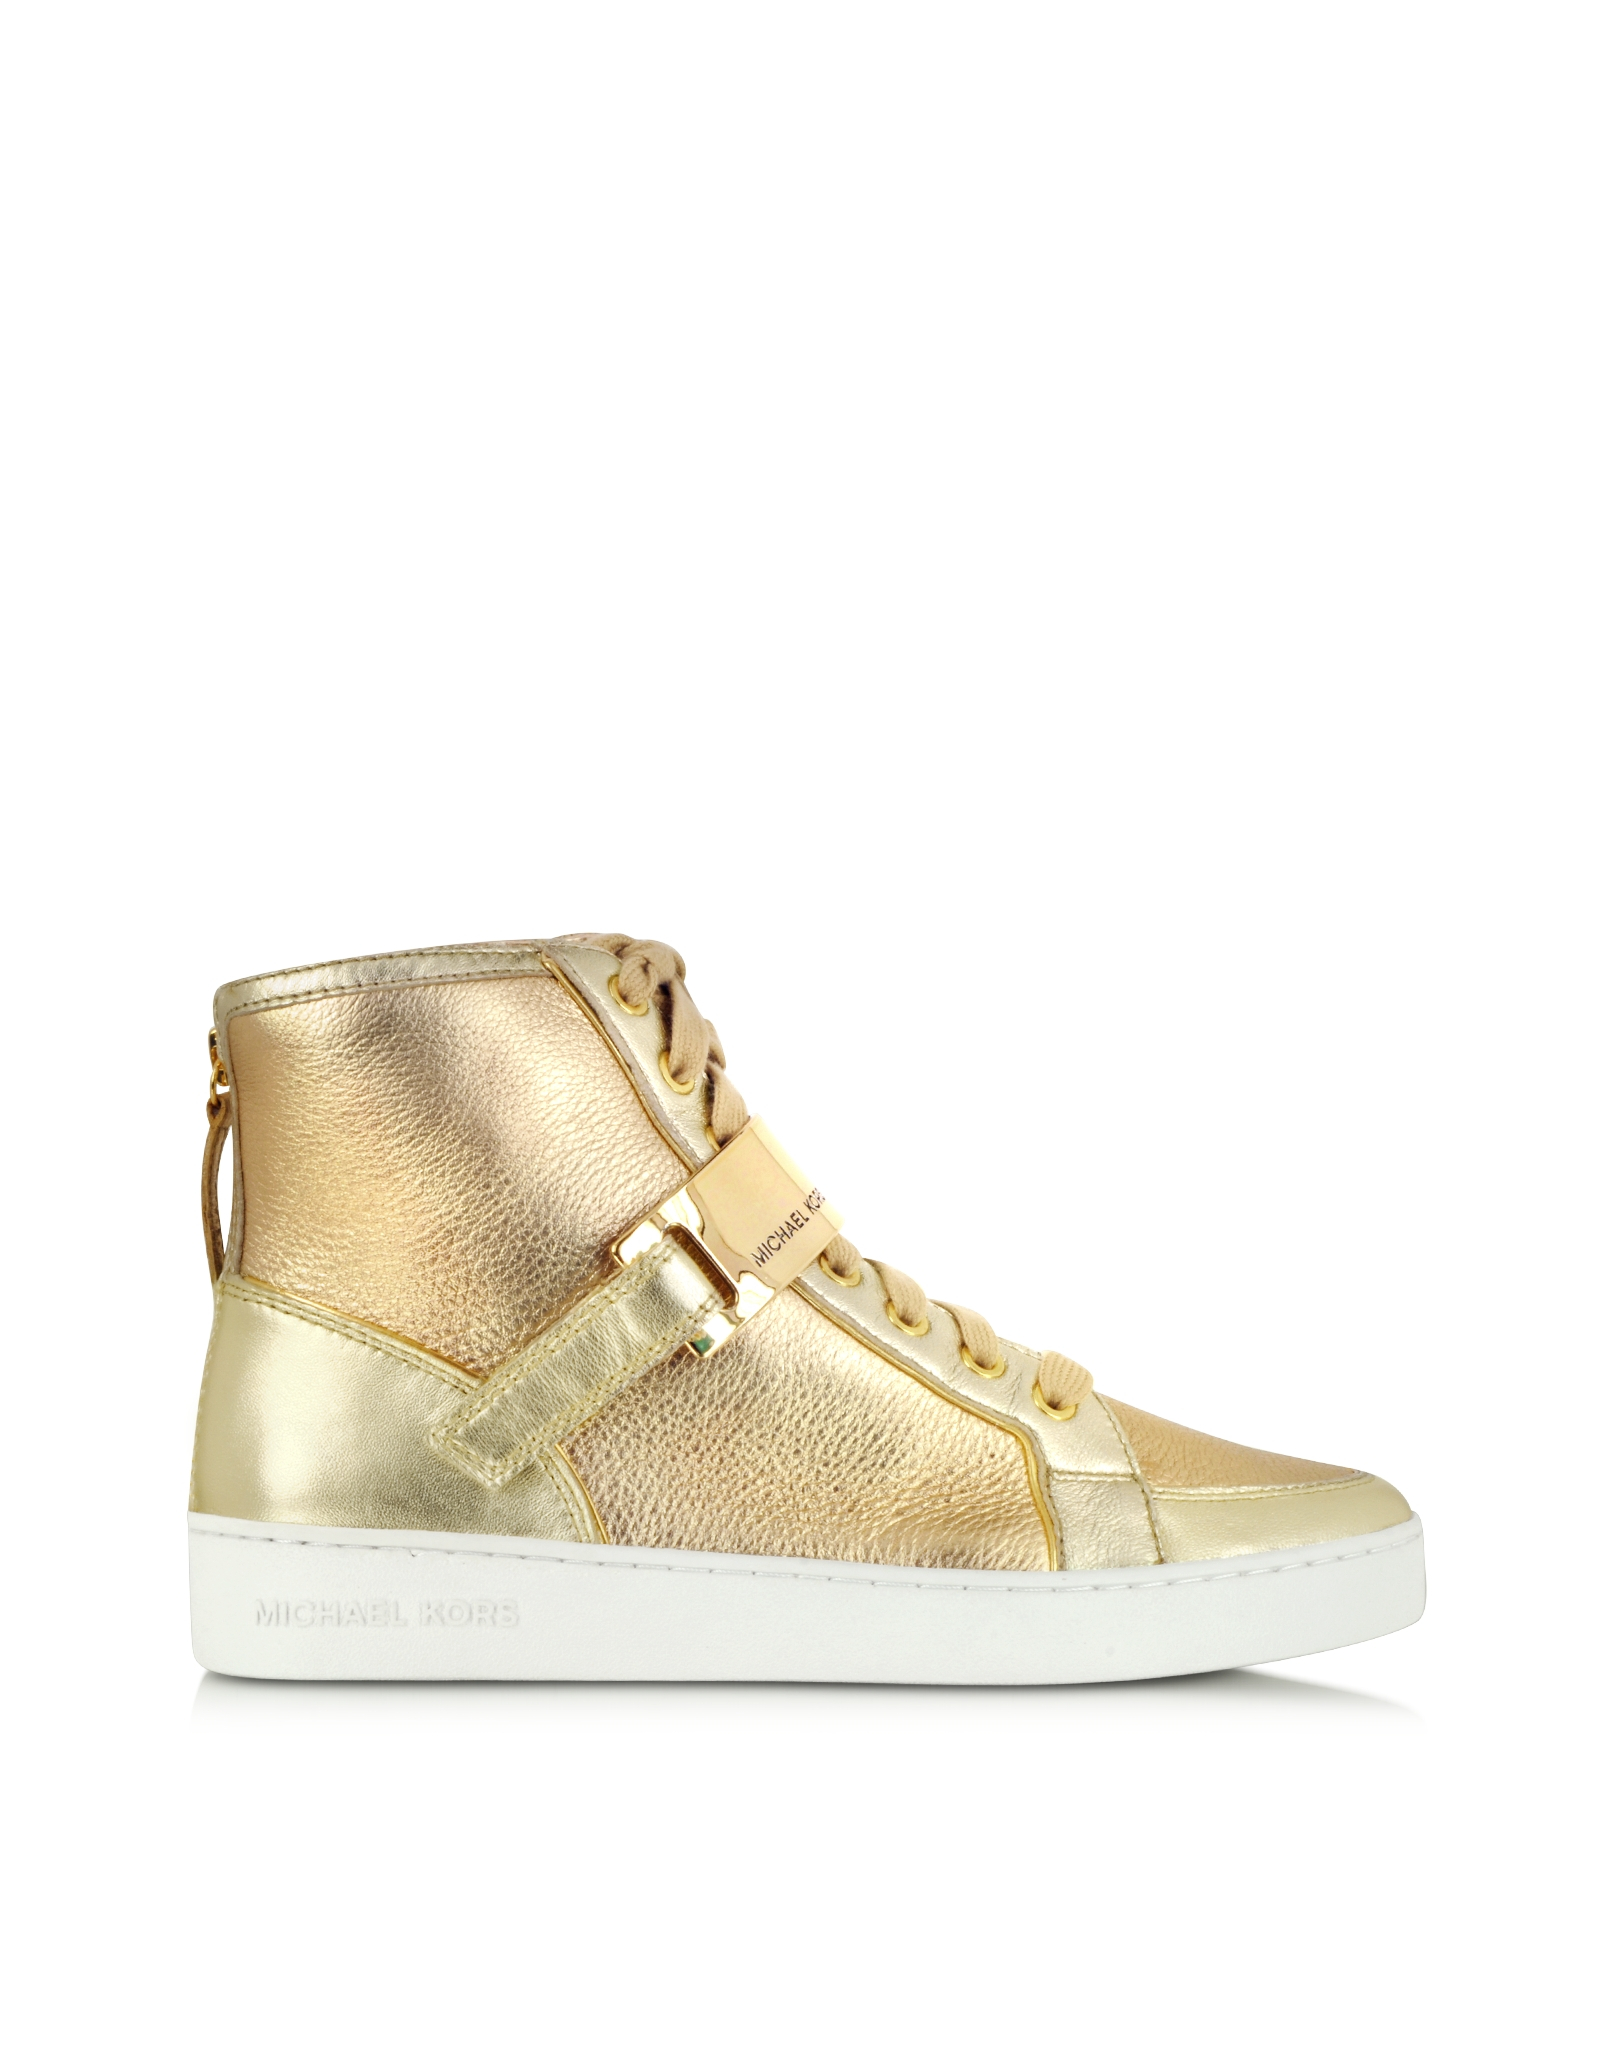 michael kors helen golden metallic high top sneaker in. Black Bedroom Furniture Sets. Home Design Ideas